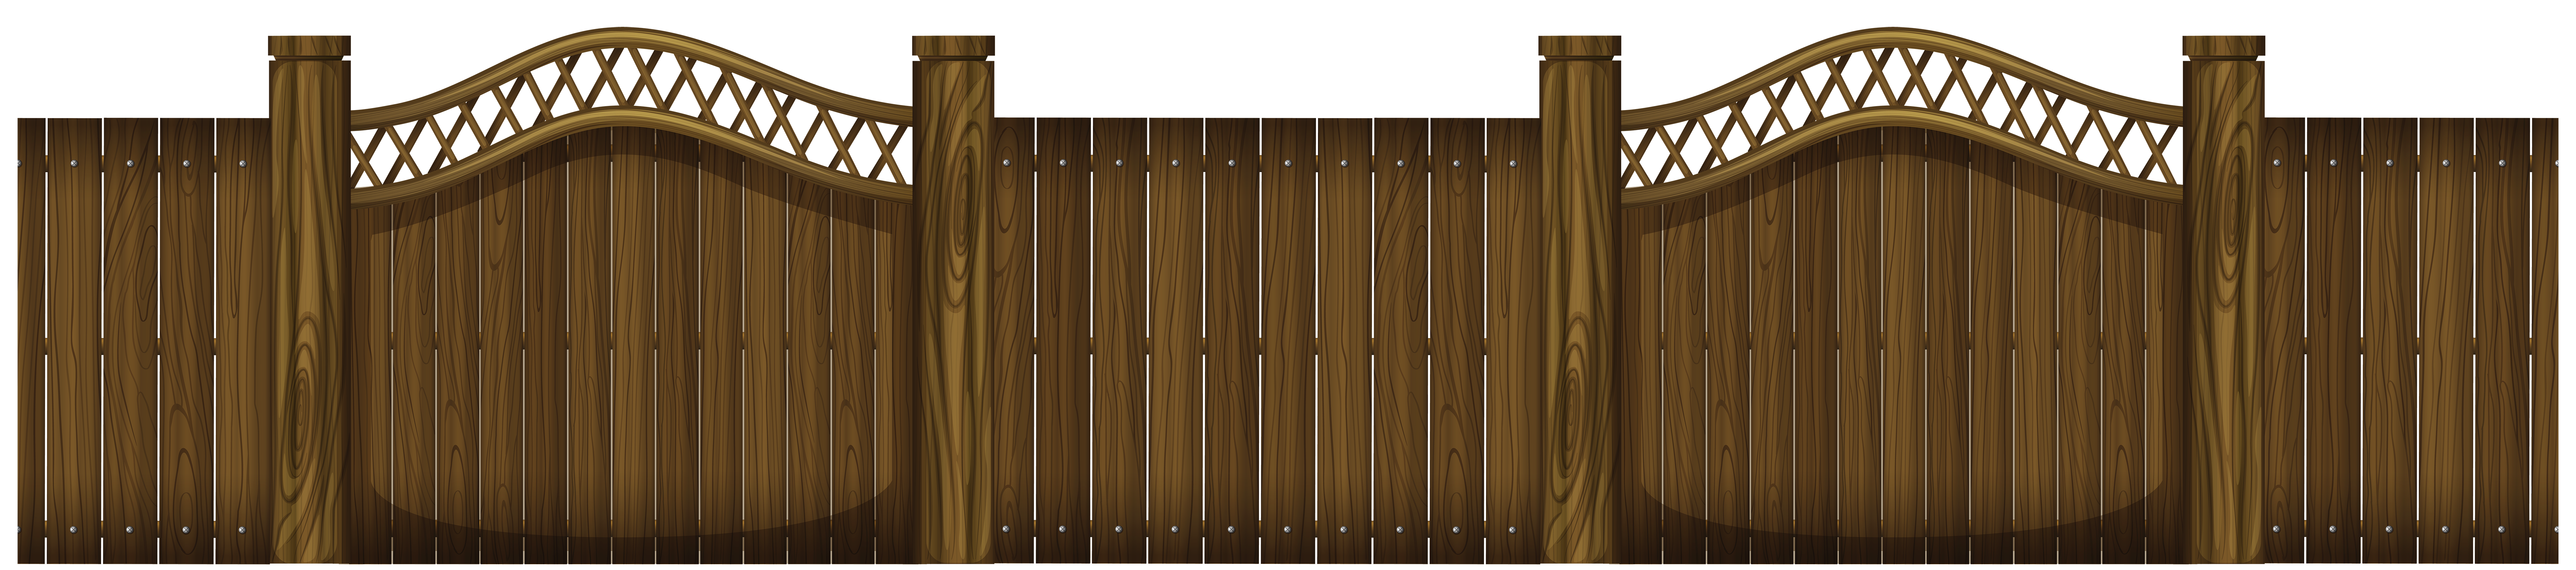 Fencing clipart wooden gate. Fence transparent png clip